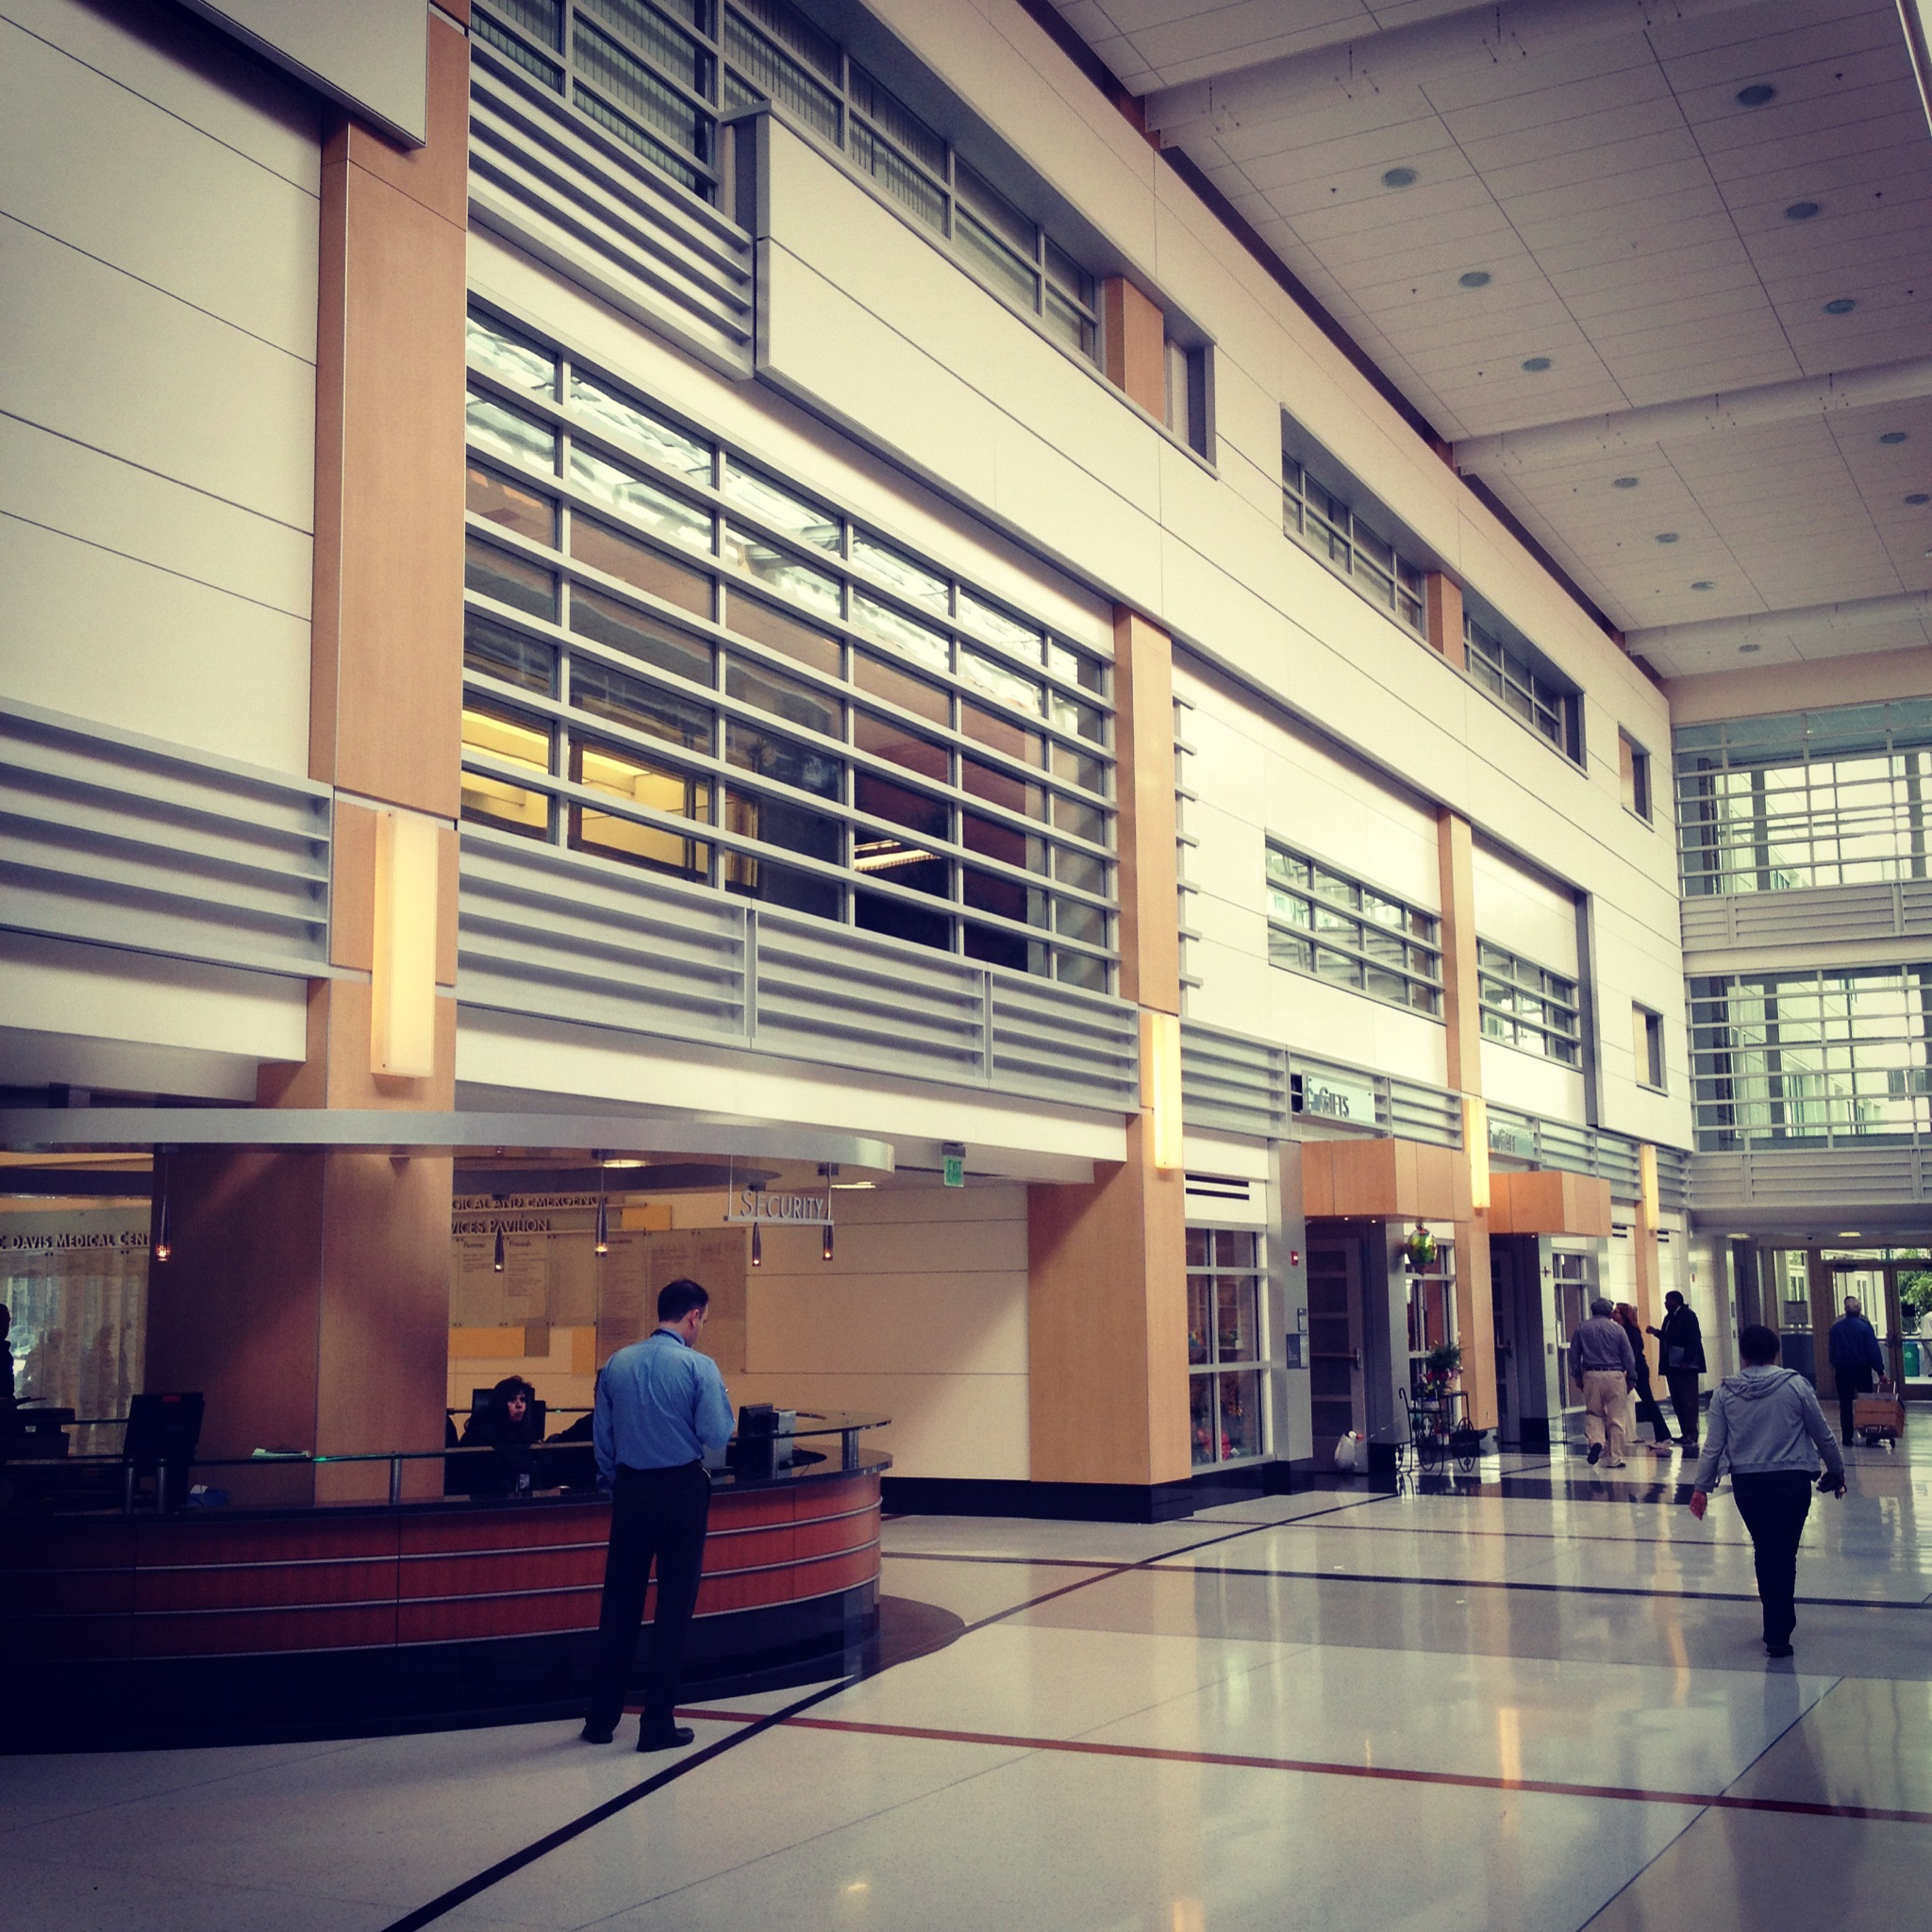 egyetemplus:ucd_medical_center_hall_2012.jpg